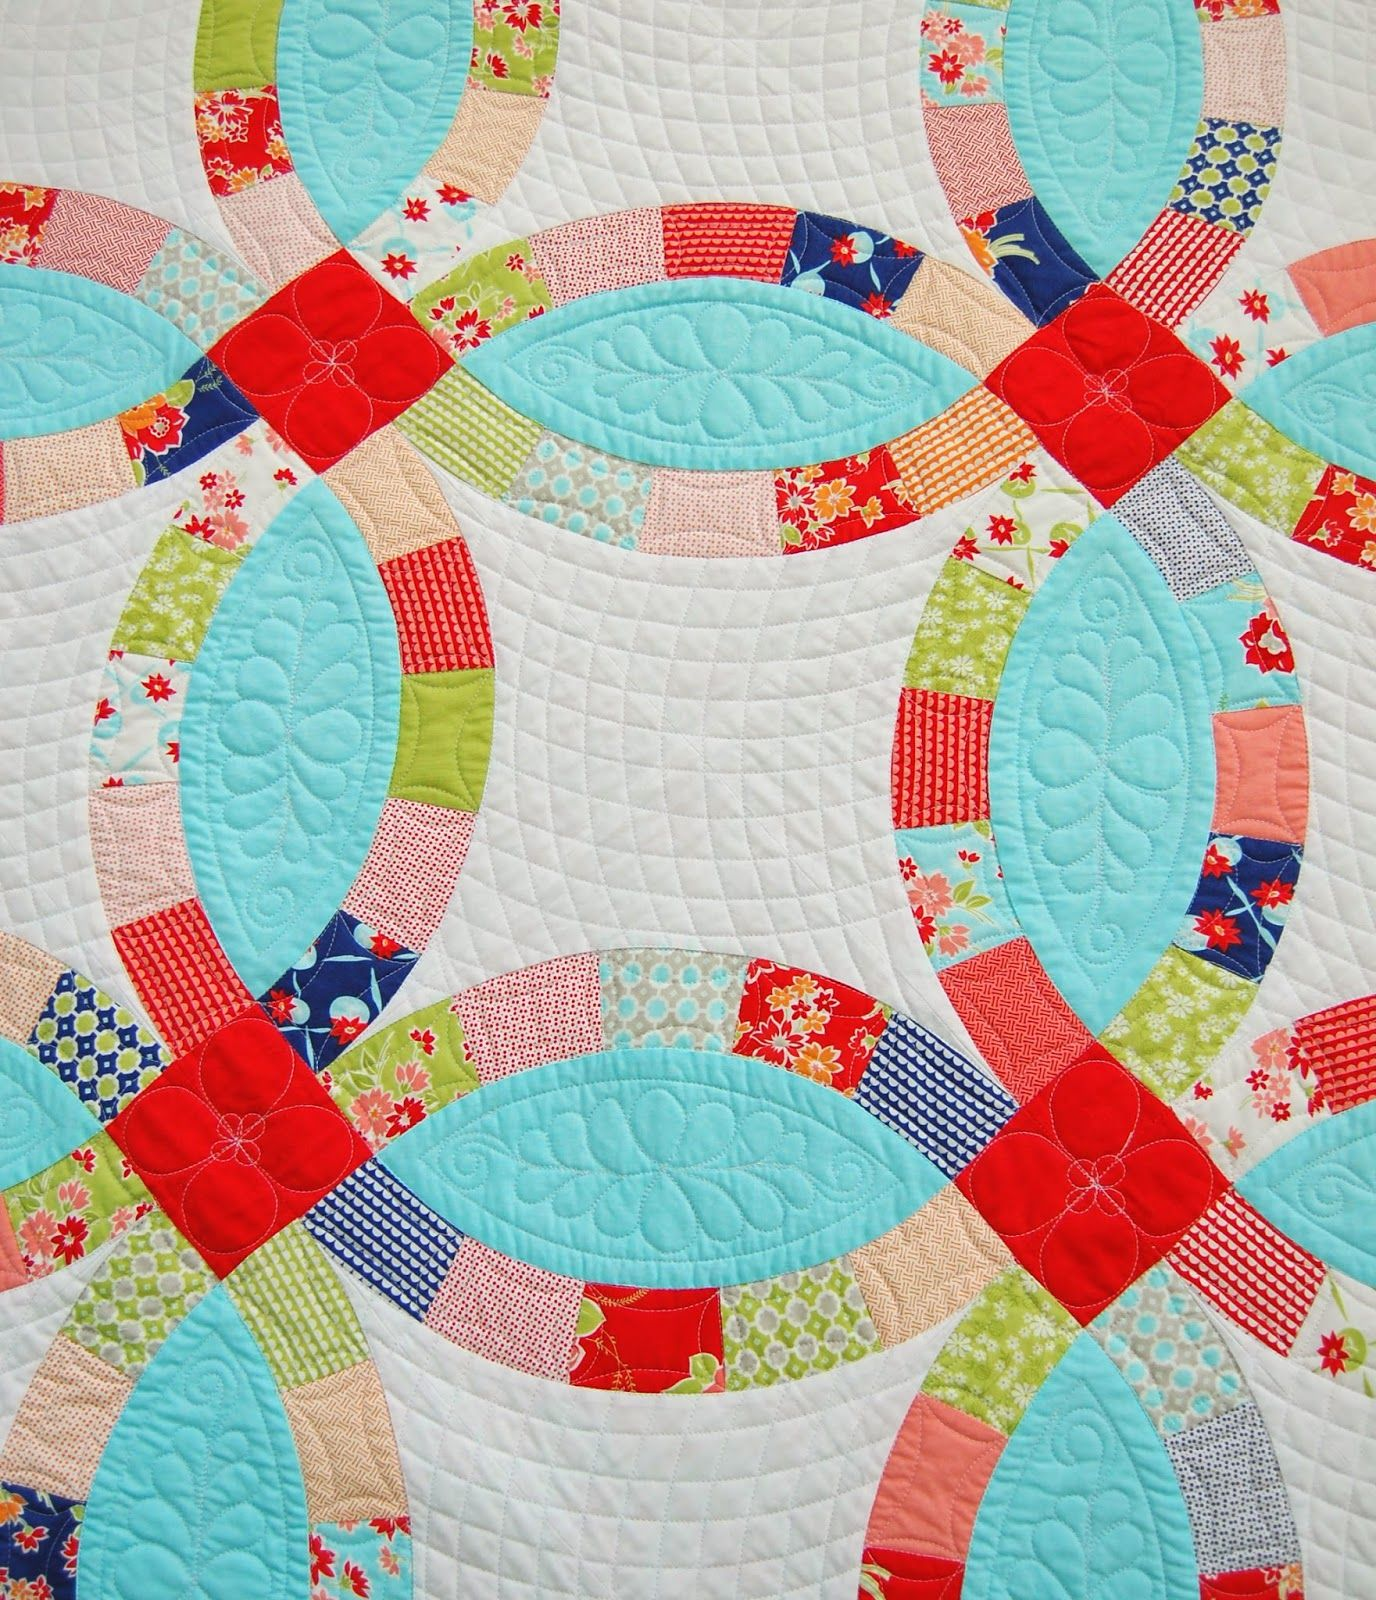 It's Miss Kate's Big Day Wedding ring quilt